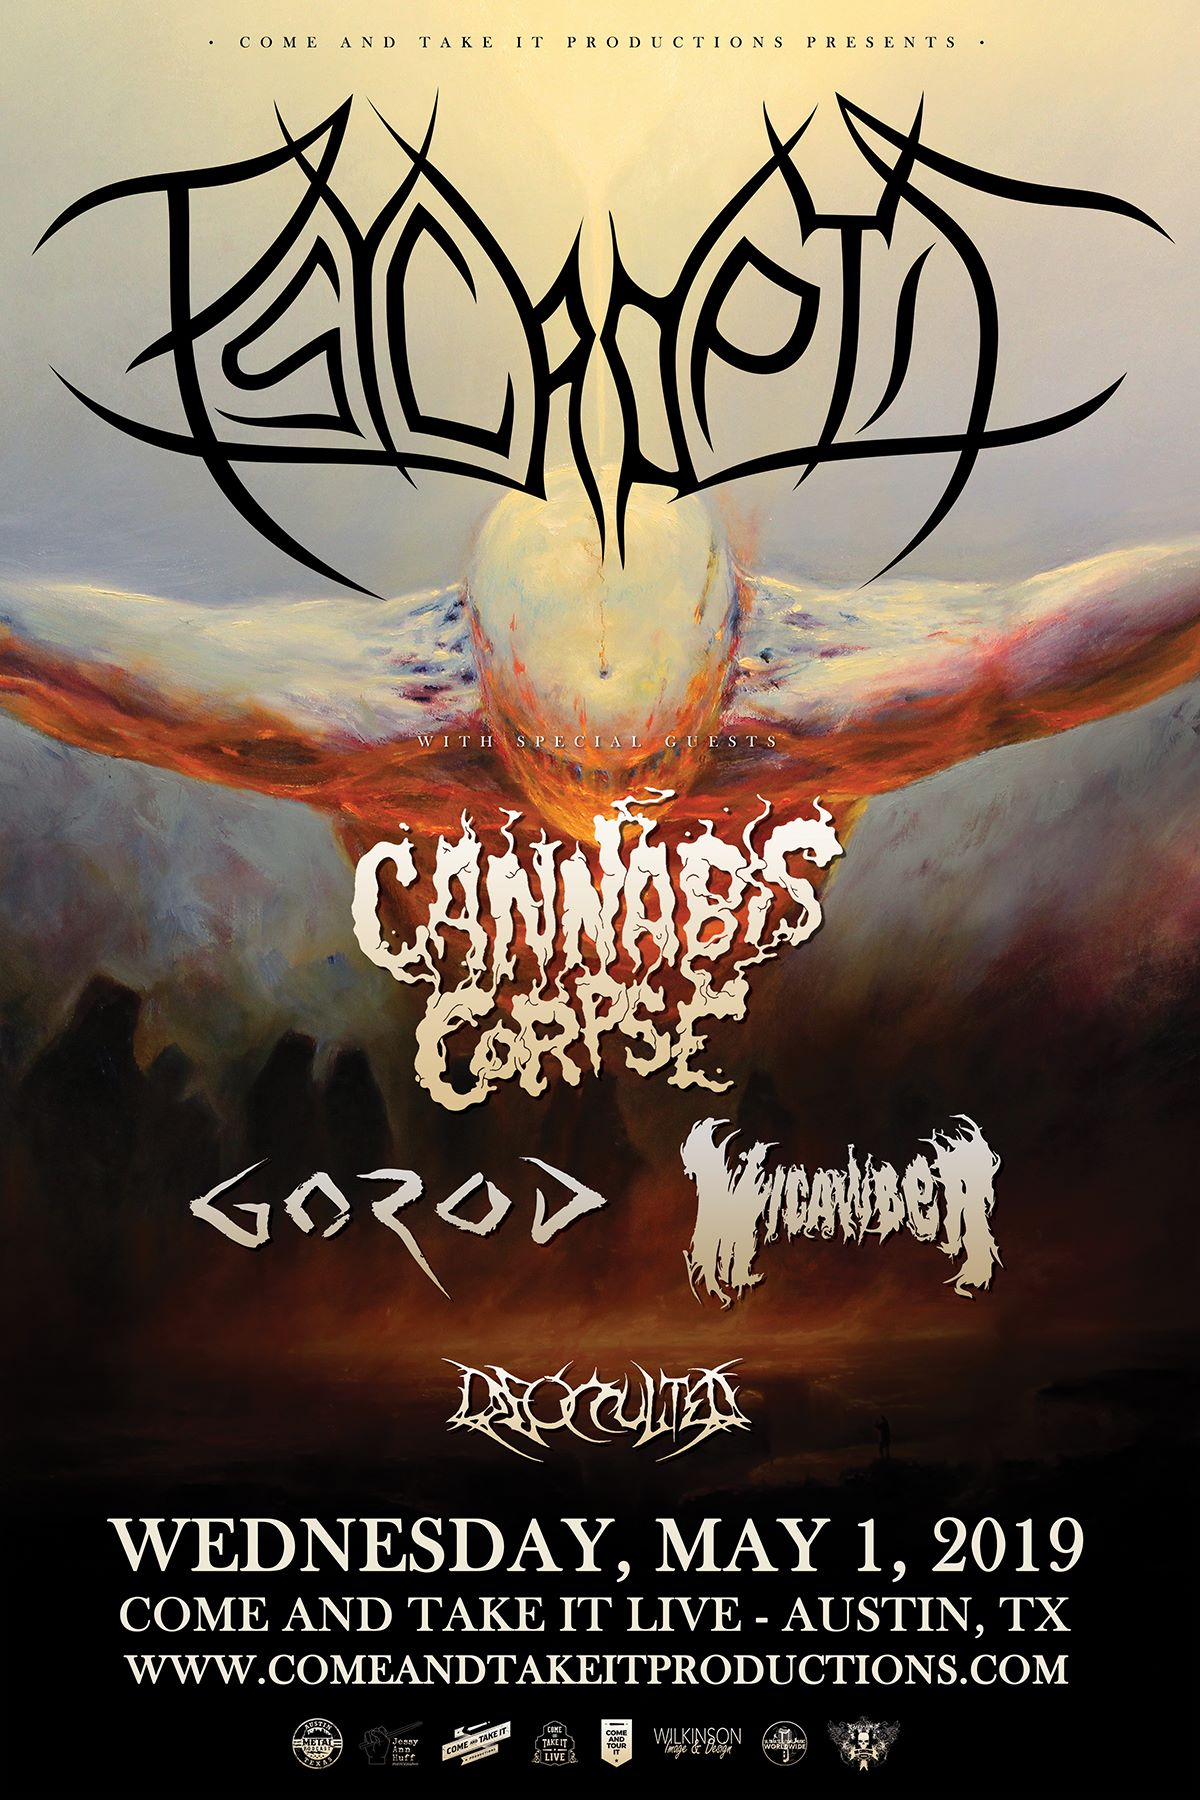 Psycroptic, Cannabis Corpse, Gorod and Micawber